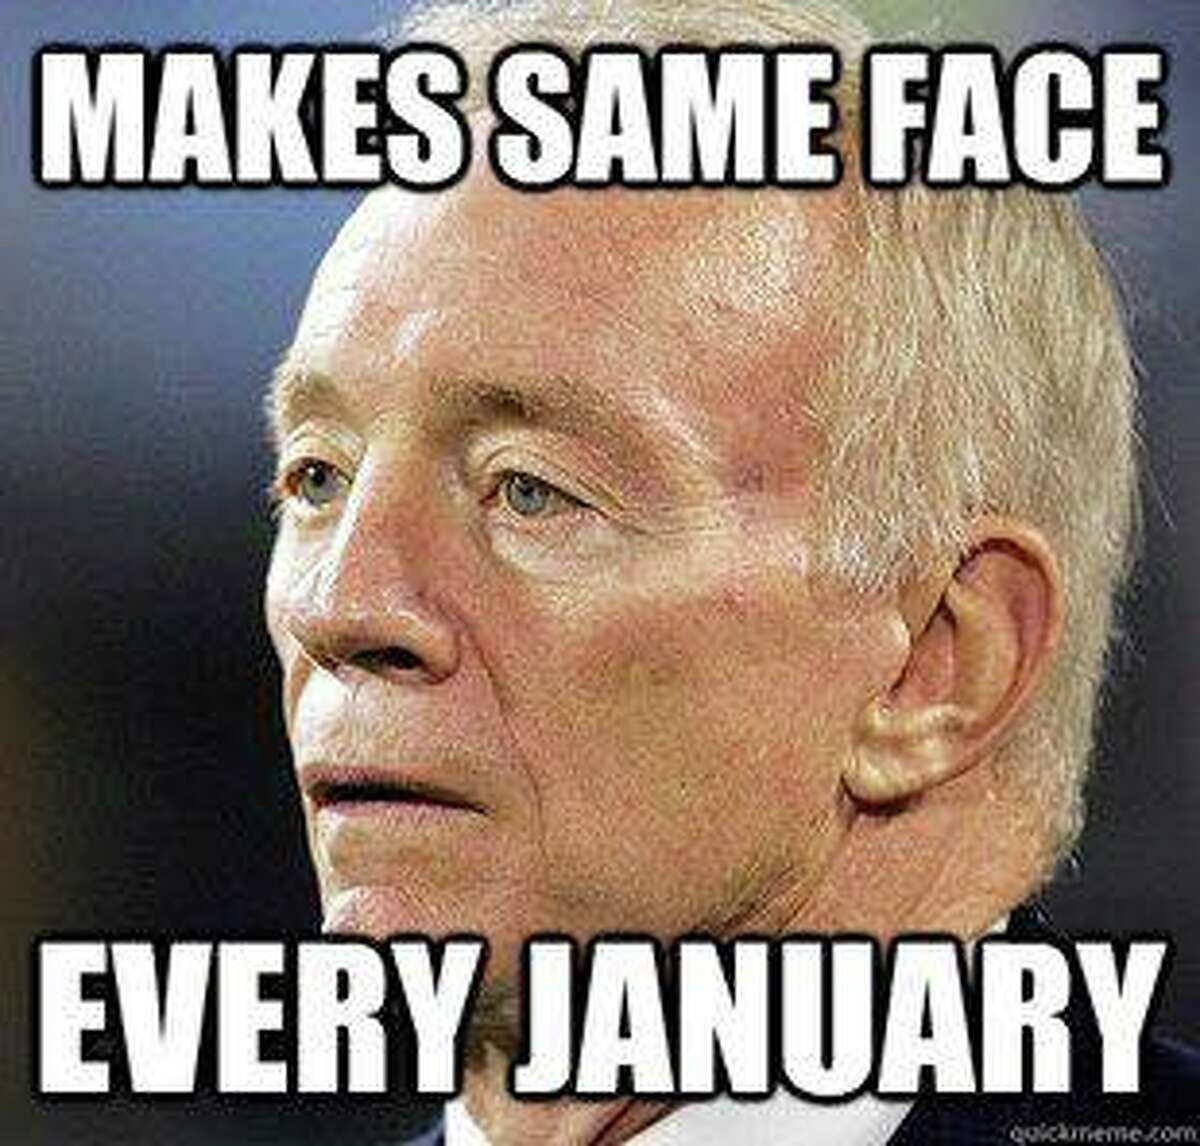 PHOTOS: Funniest memes from the Divisional Round of the NFL Playoffs NFL Meme via NFL Memes 4 You on Facebook